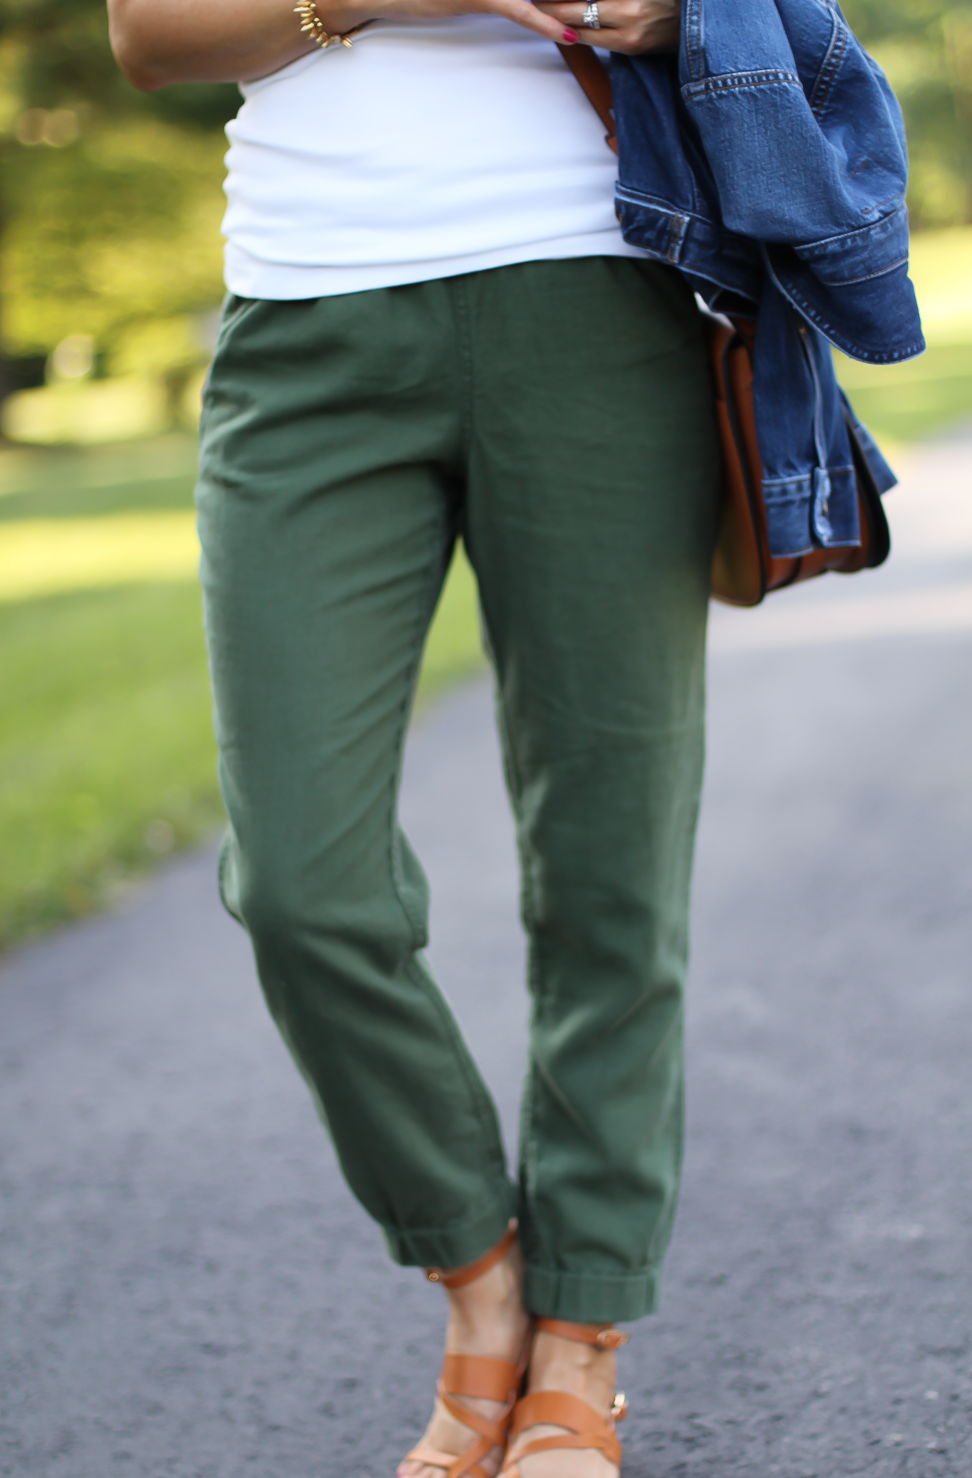 Army Green Joggers, White Sleeveless Shell Tee, Gladiator Sandals, Saddle Bag, J.Crew, tory Burch, Ancient Gladiator 10